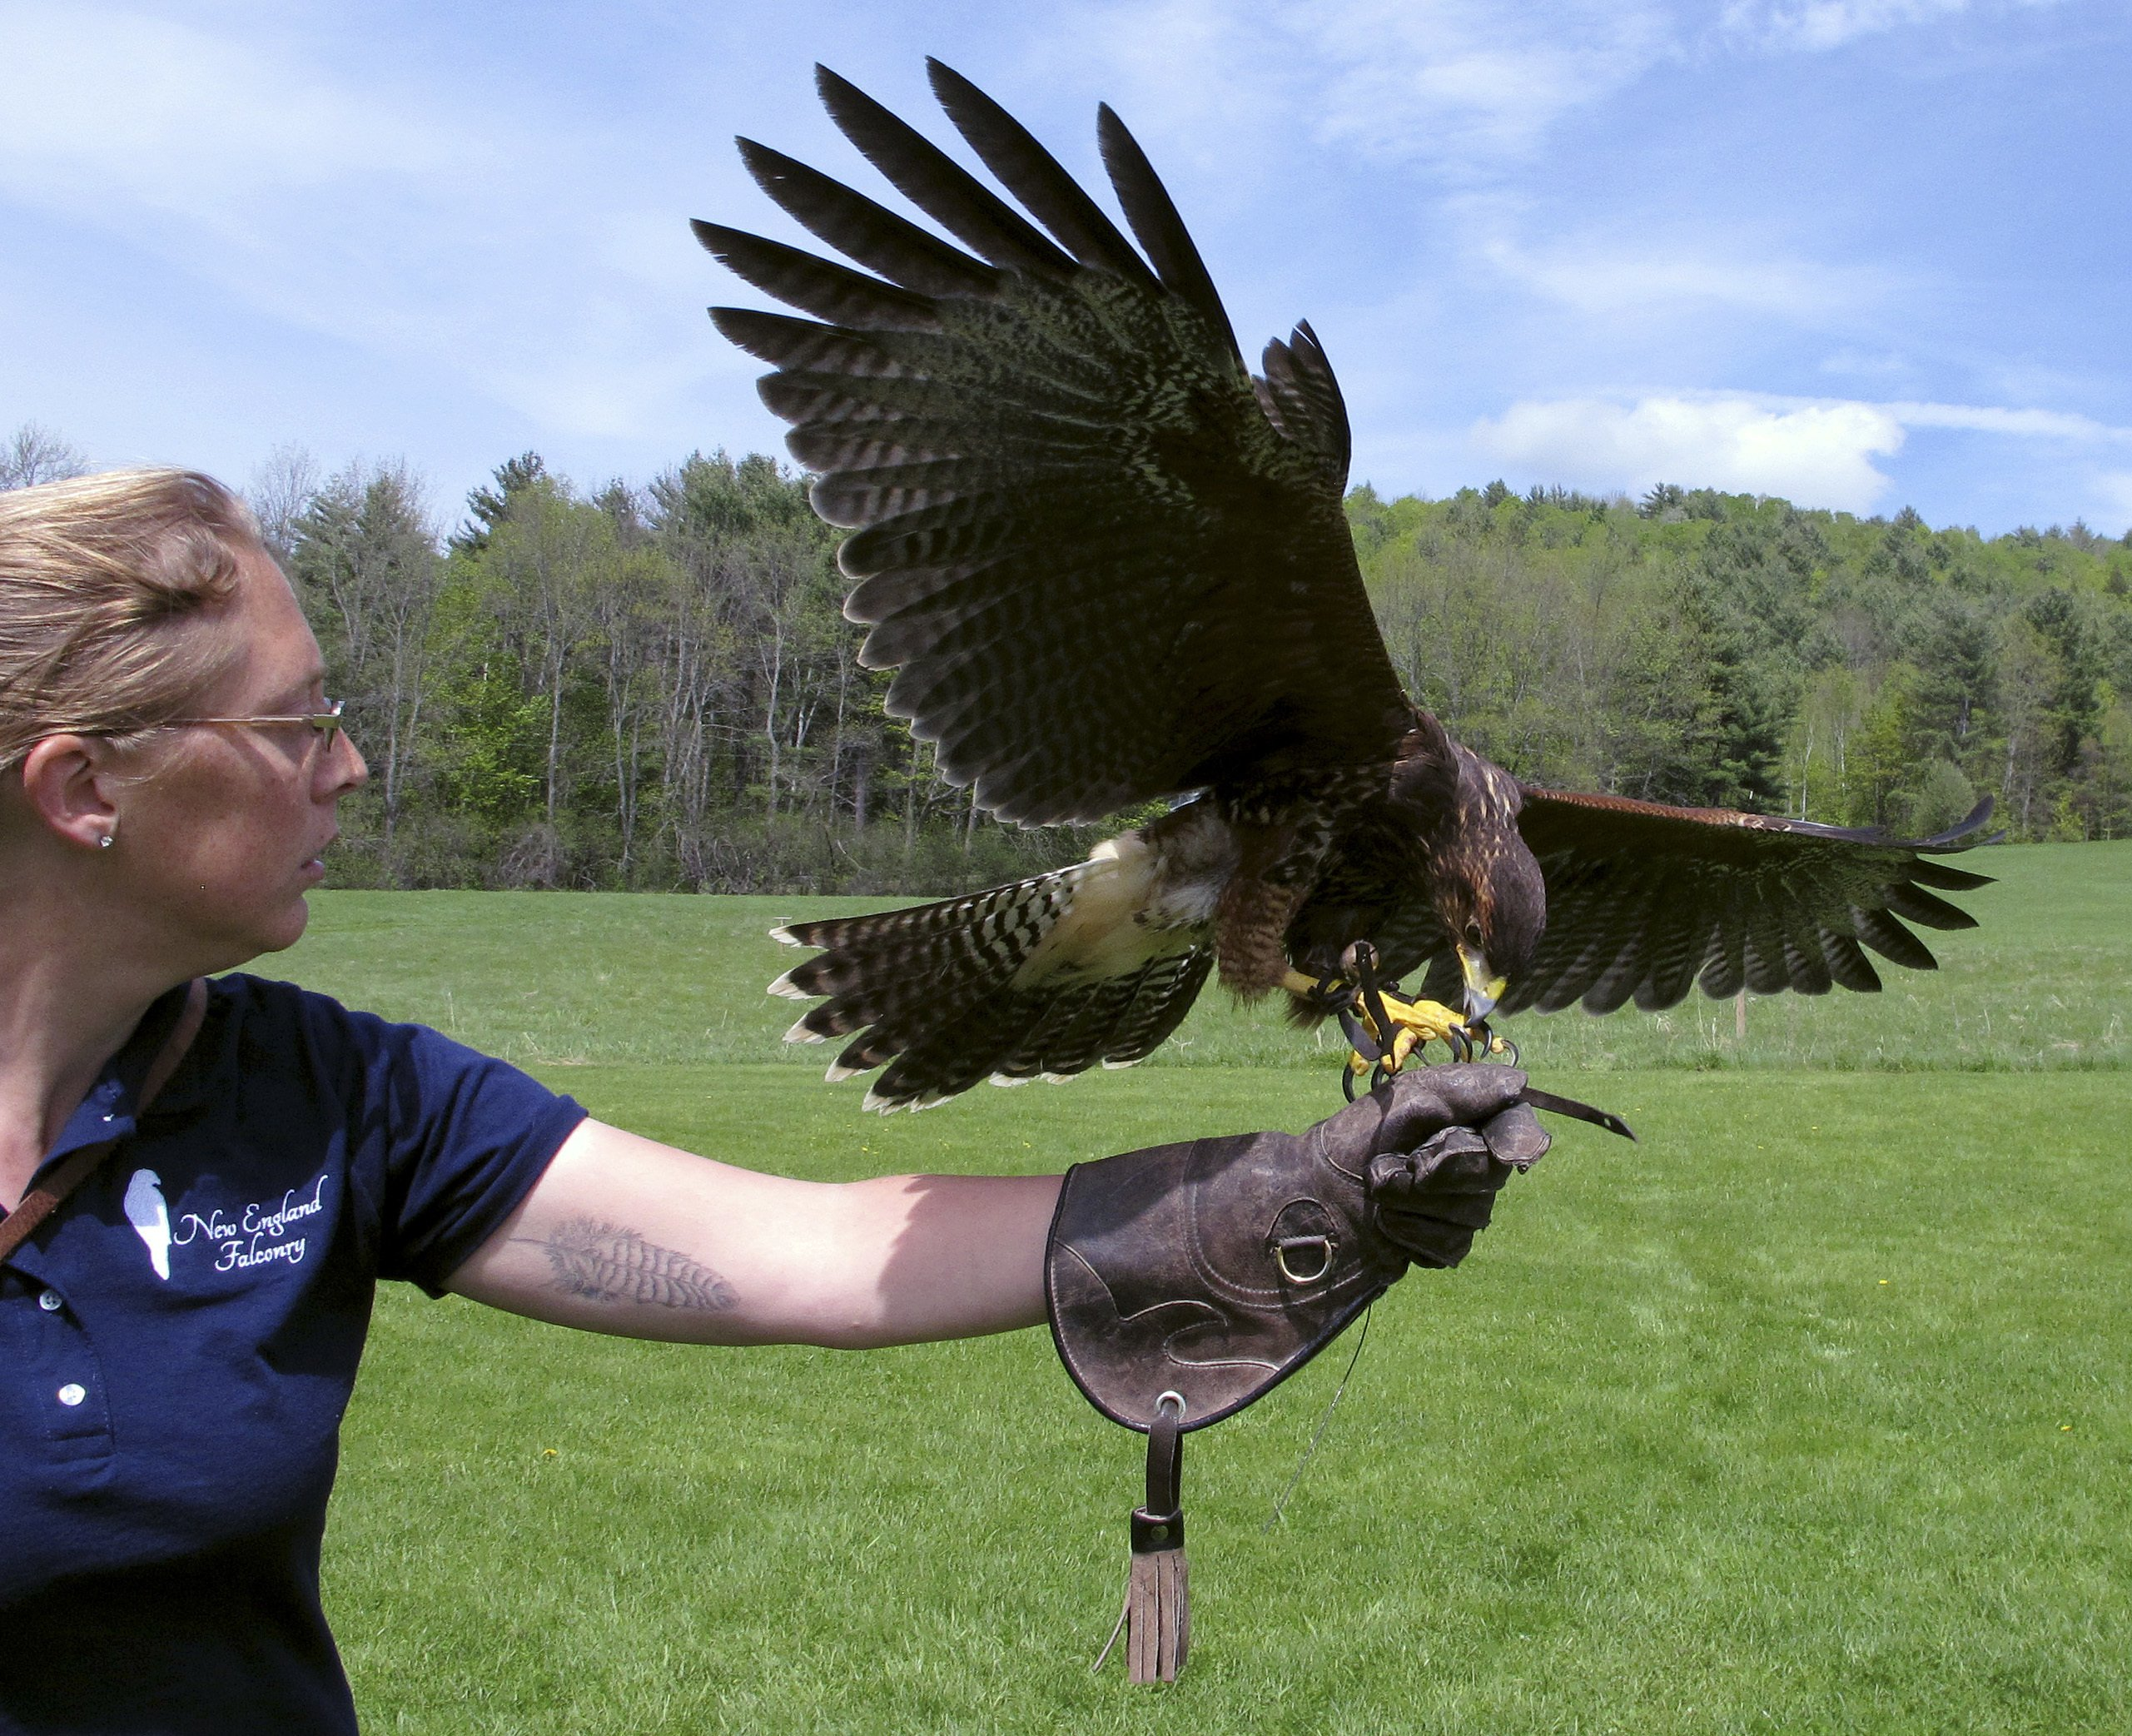 Tourists Can Now Experience The Ancient Sport Of Falconry